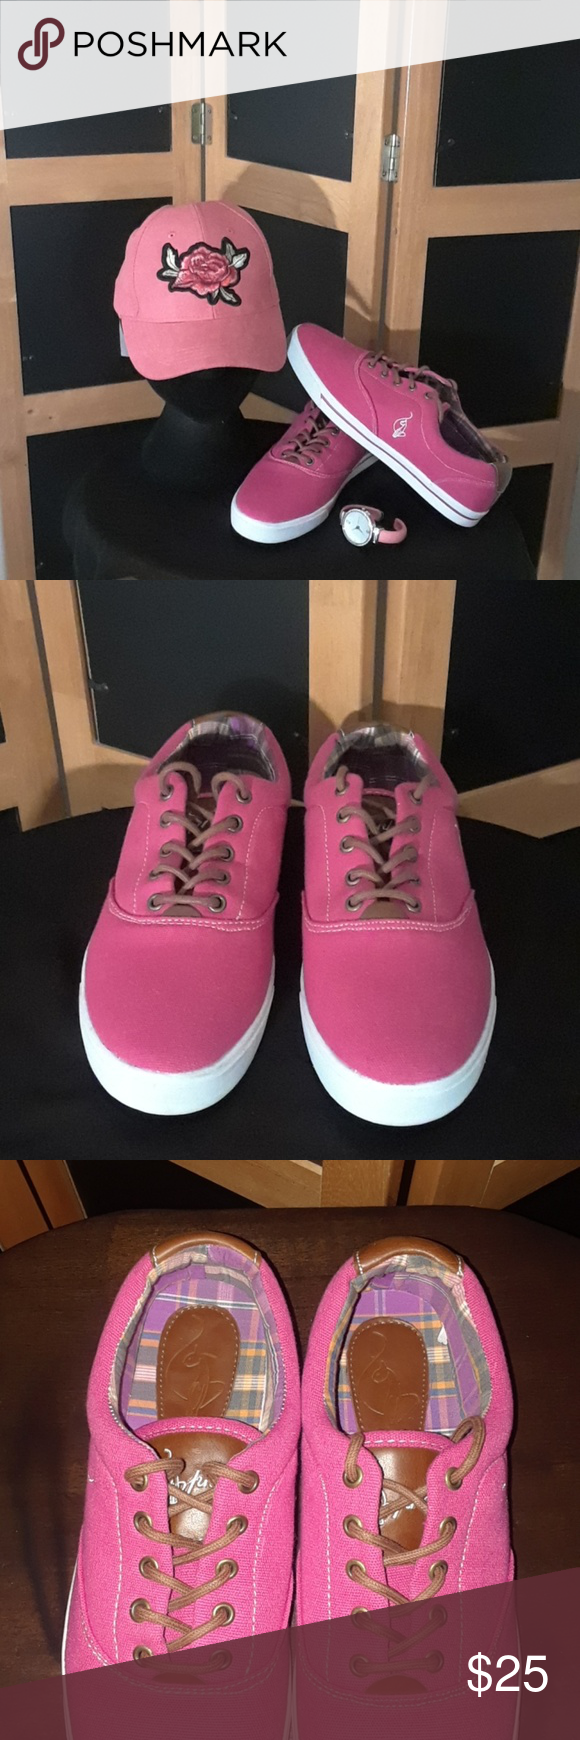 09049675e98 Baby Phat Canvas Sneakers 💟💟💟 Baby Phat Canvas Sneakers - Fuchsia Pink